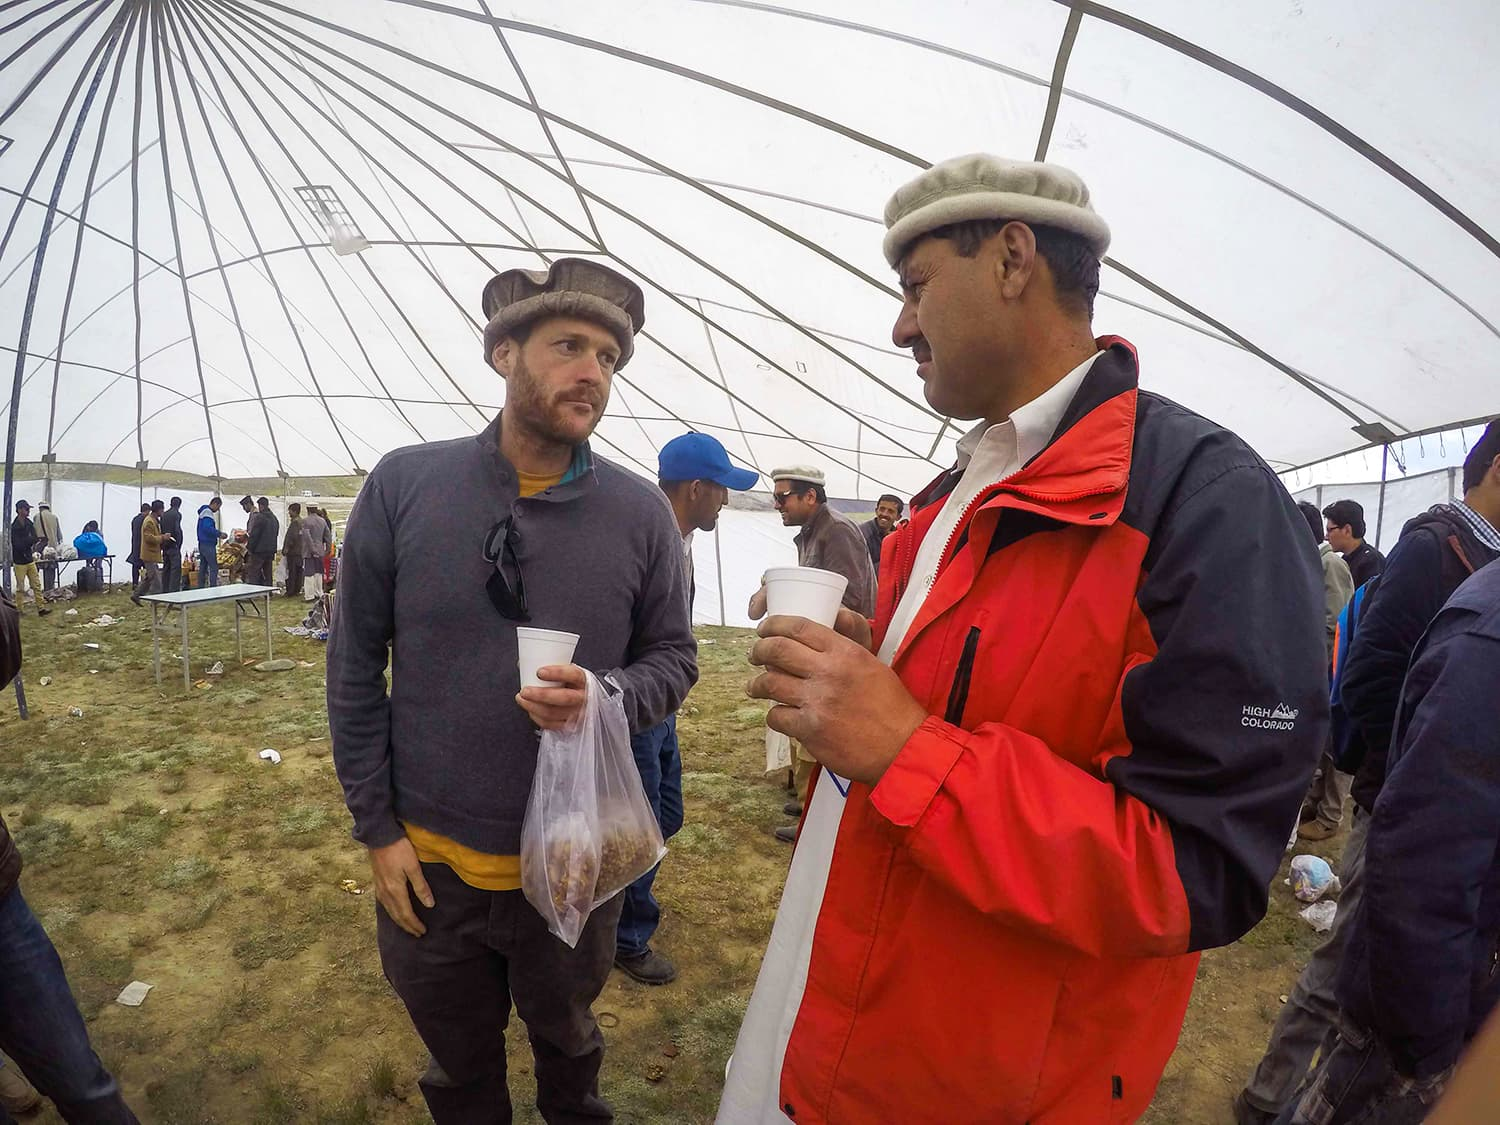 Having a chat with a mate at the Khunjerab Festival. —Madeeha Syed